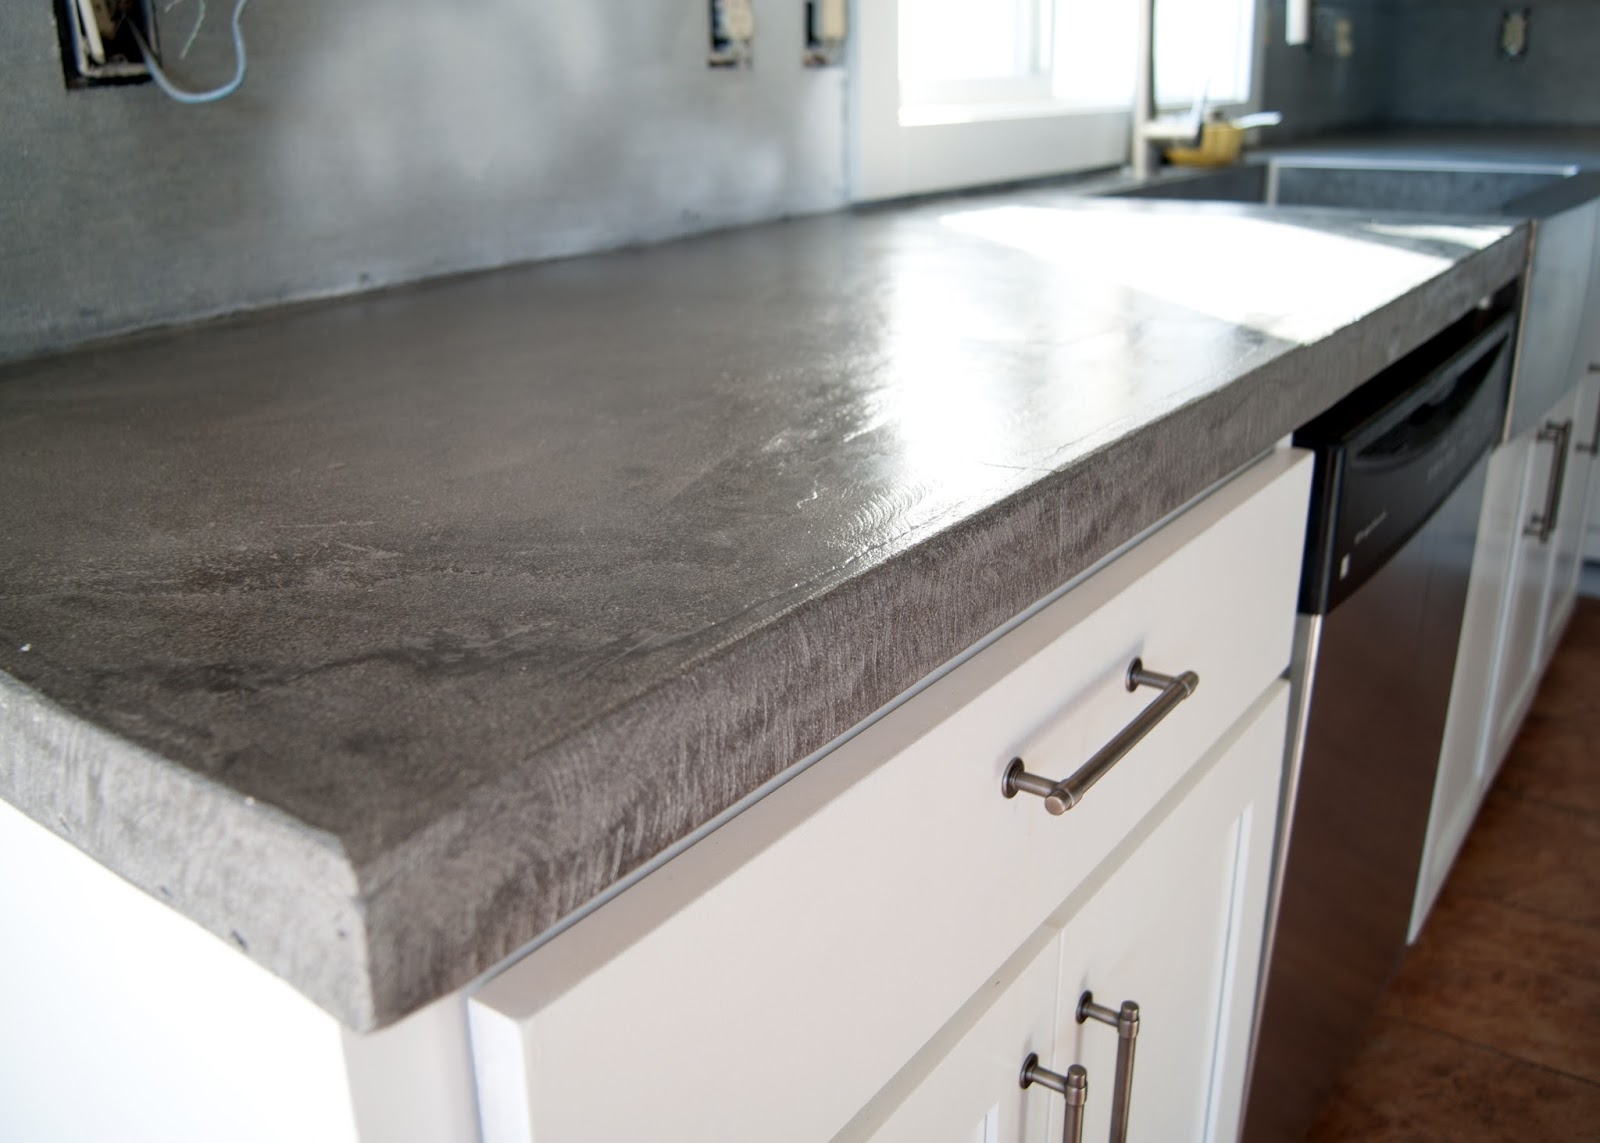 diy concrete counters poured over concrete kitchen countertops Wet look sealer applied to concrete counters for a shiny finish